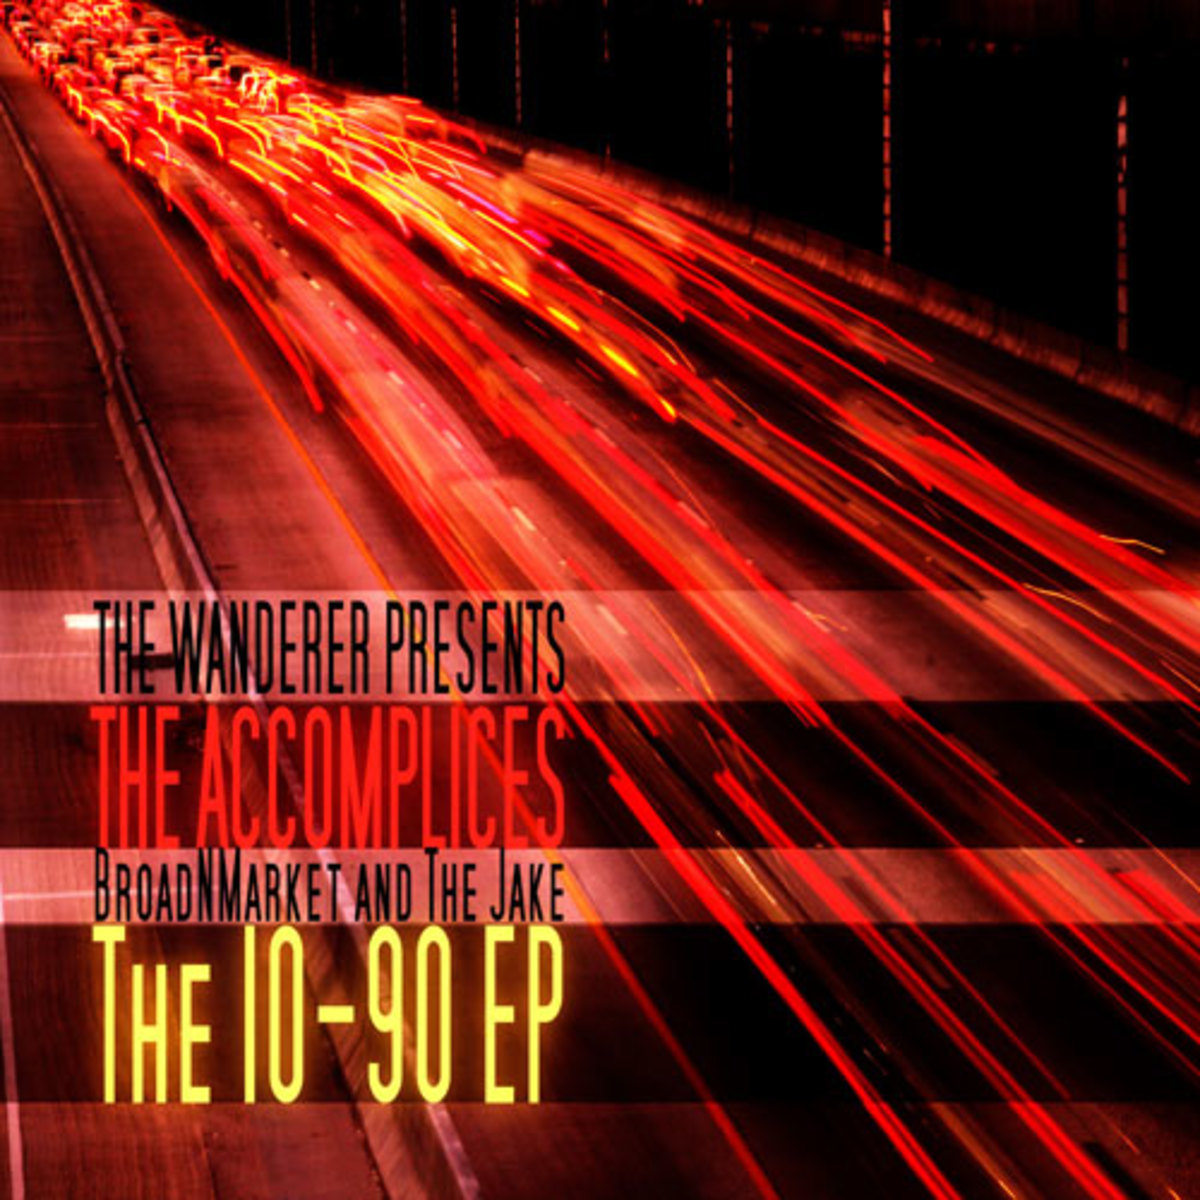 accomplices-1090ep.jpg